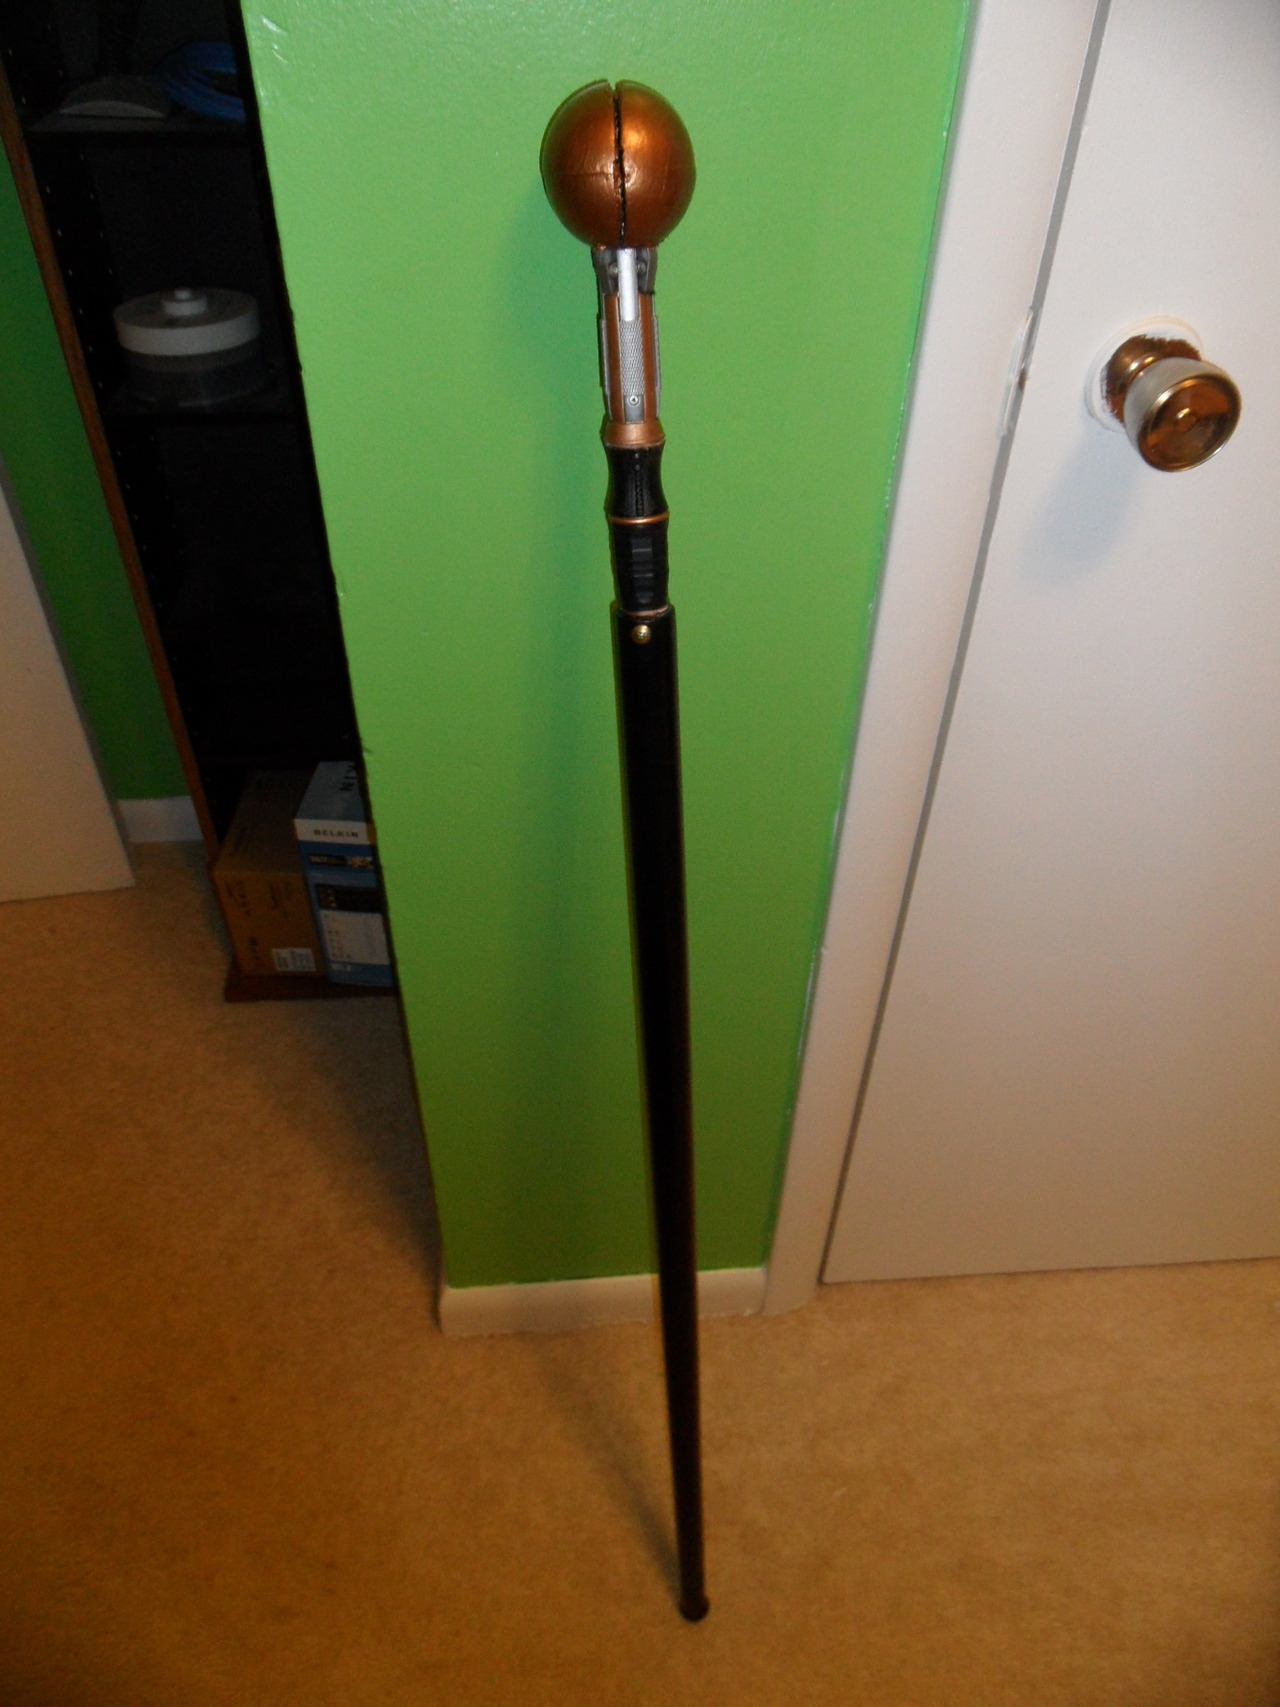 11th Doctor's Sonic Cane - based on the one from Let's Kill Hitler. Not the best, but I tried. Went with a little different approach due to what I could handle in terms of skills.Used a pool cue, Sonic Screwdriver, and a foam ball.